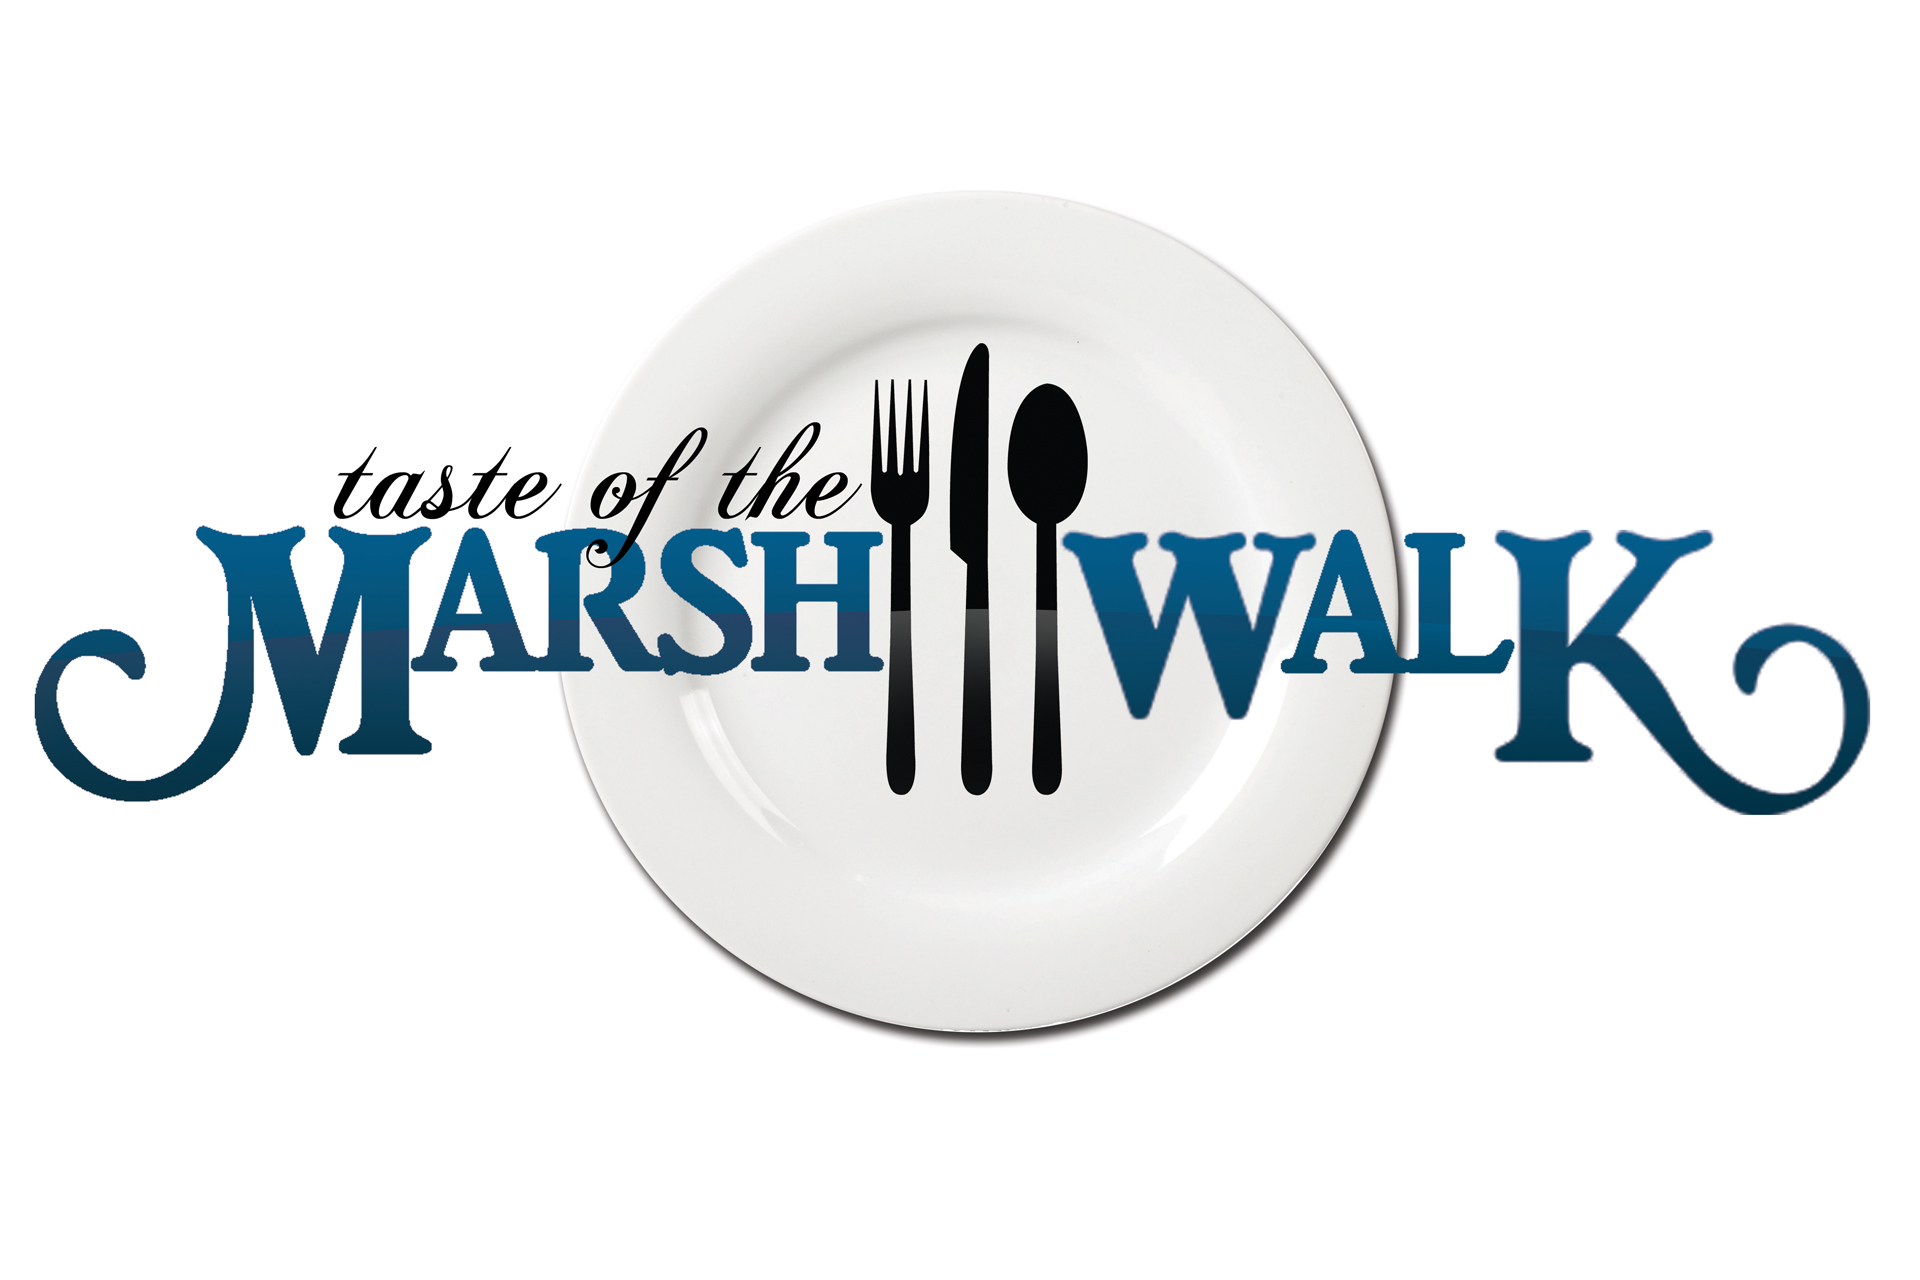 Dazzle your Tastebuds at Taste of the Marshwalk